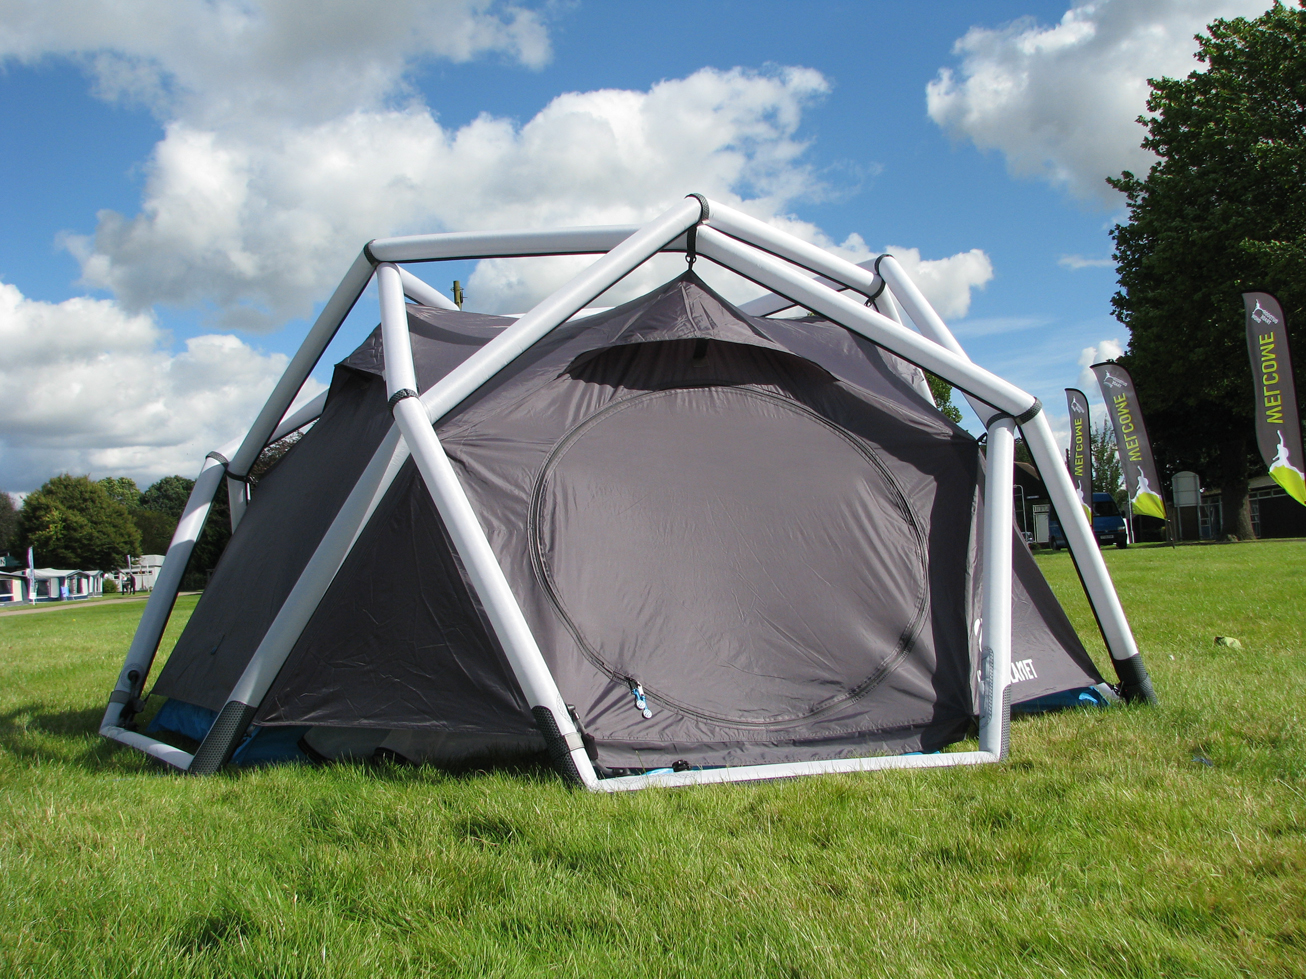 007 high tech c&ing gadgets & 007 high tech camping gadgets - Practical Advice - Camping - Out ...